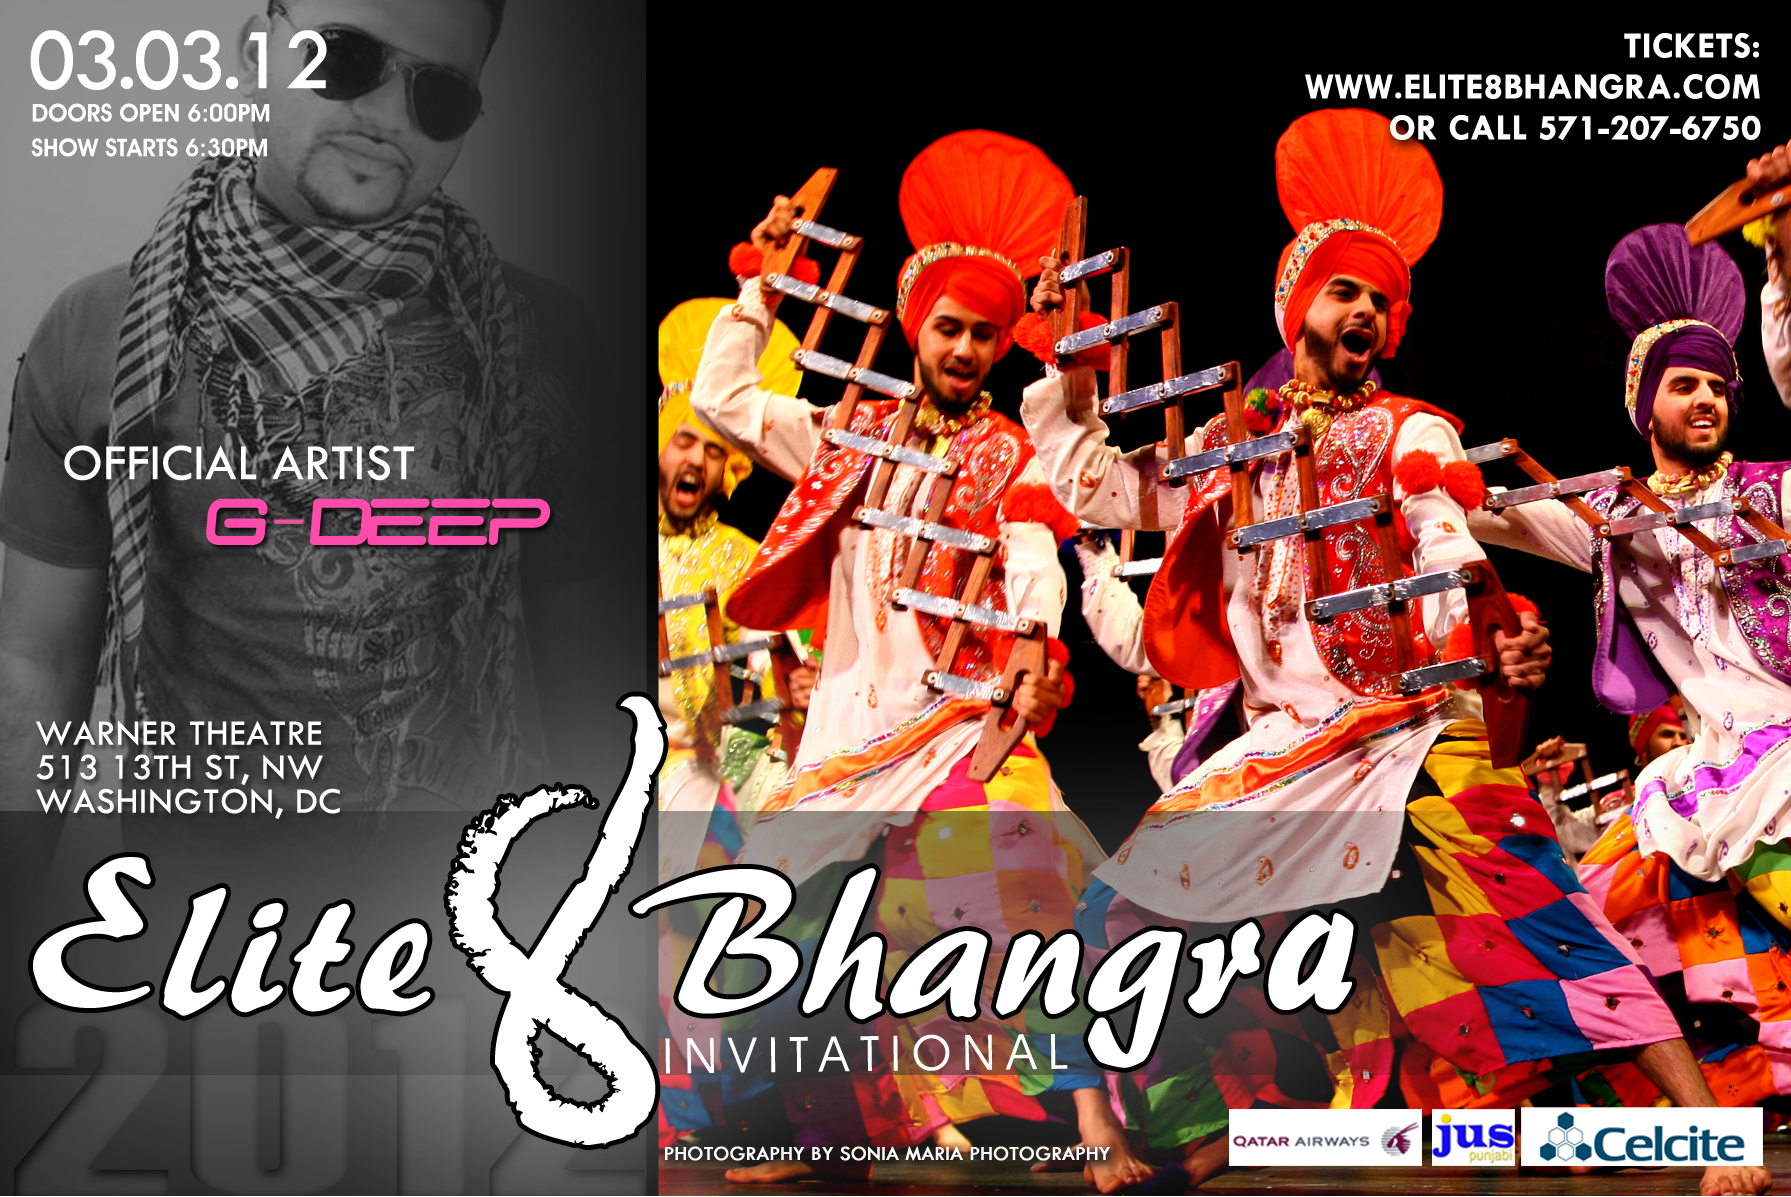 Elite 8 Bhangra Invitational 2012